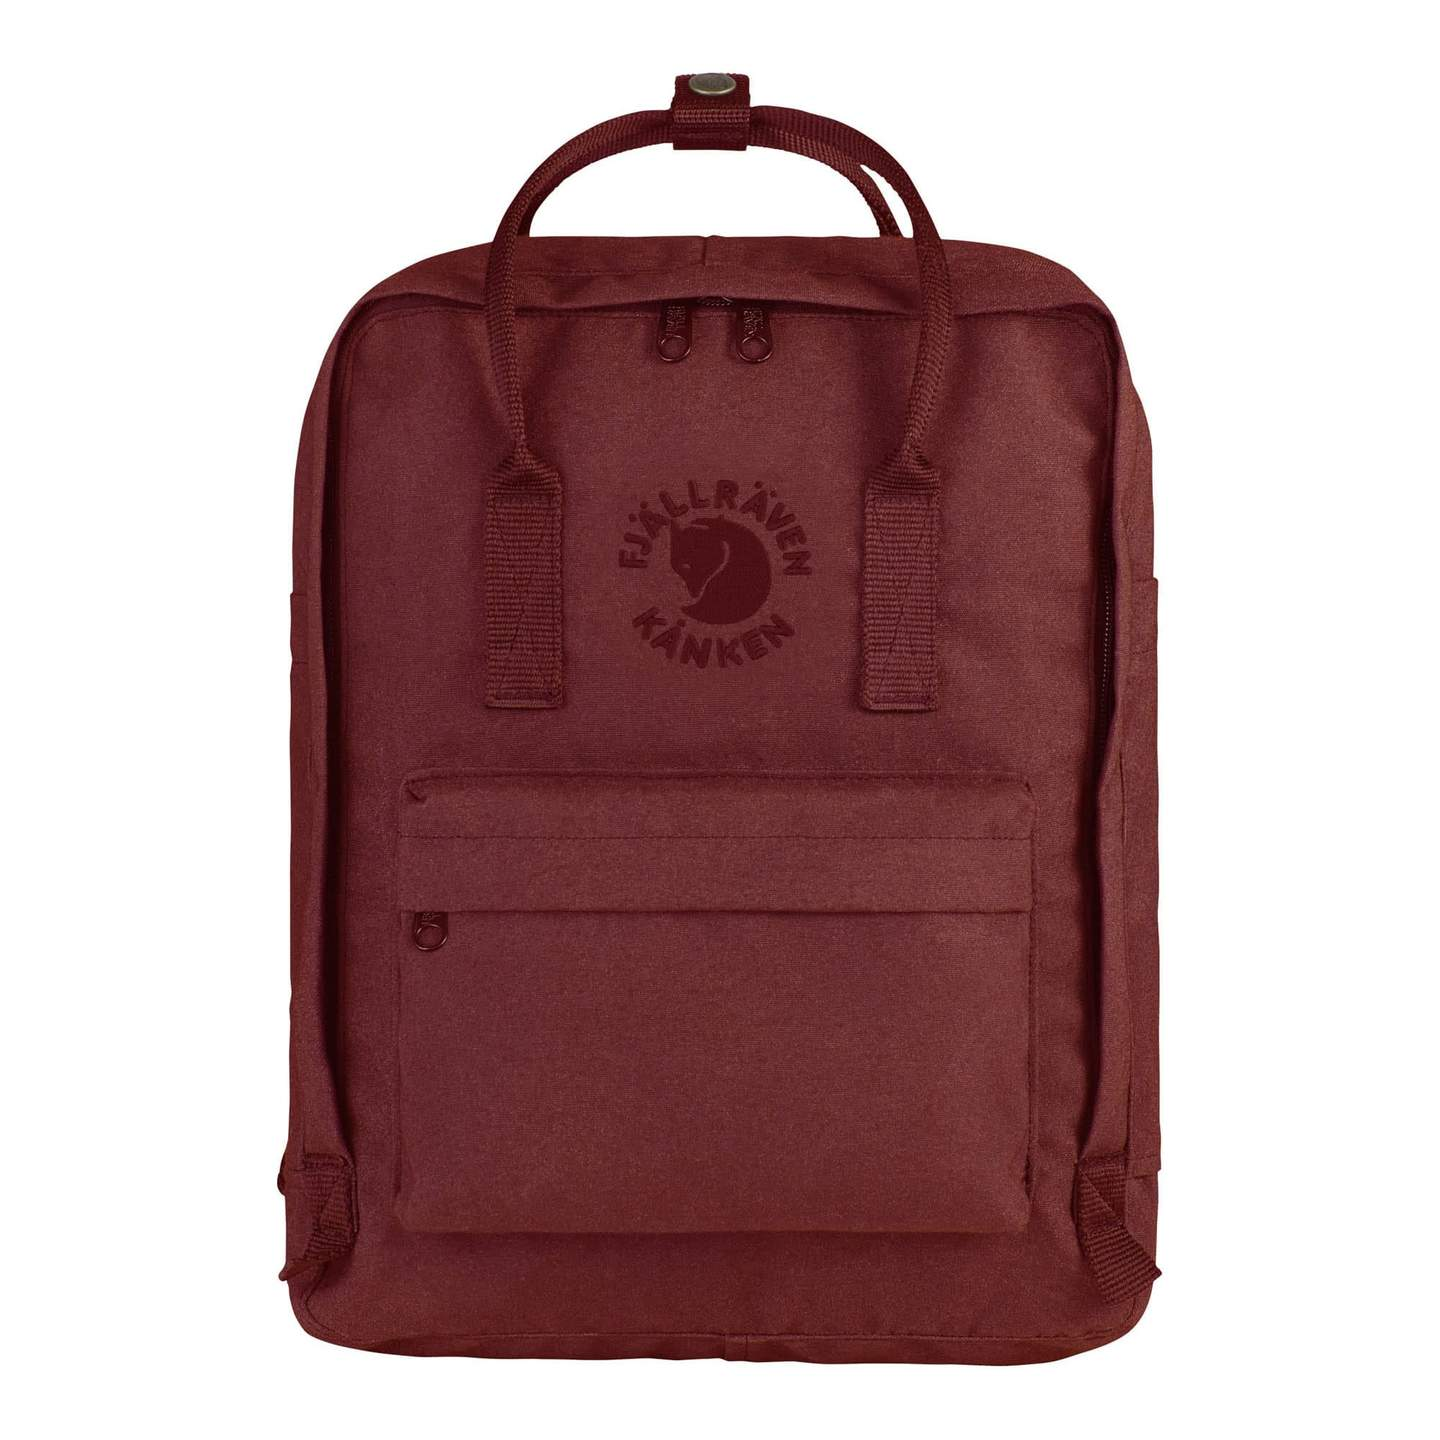 Fjallraven Re-Kanken Backpack - Ox Red - Find Your Feet Australia Hobart Launceston Tasmania